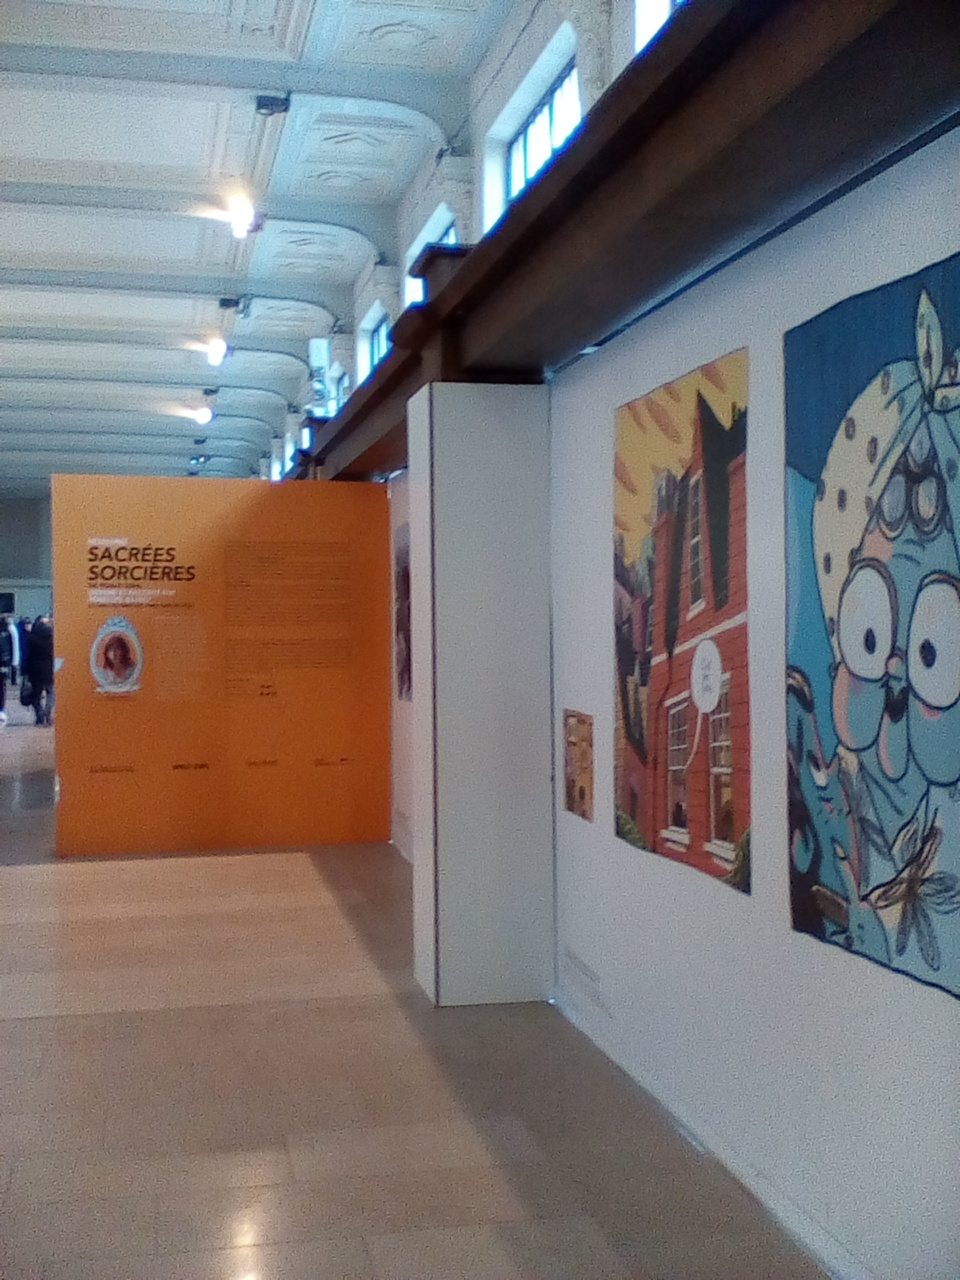 Comics in gare de Lyon